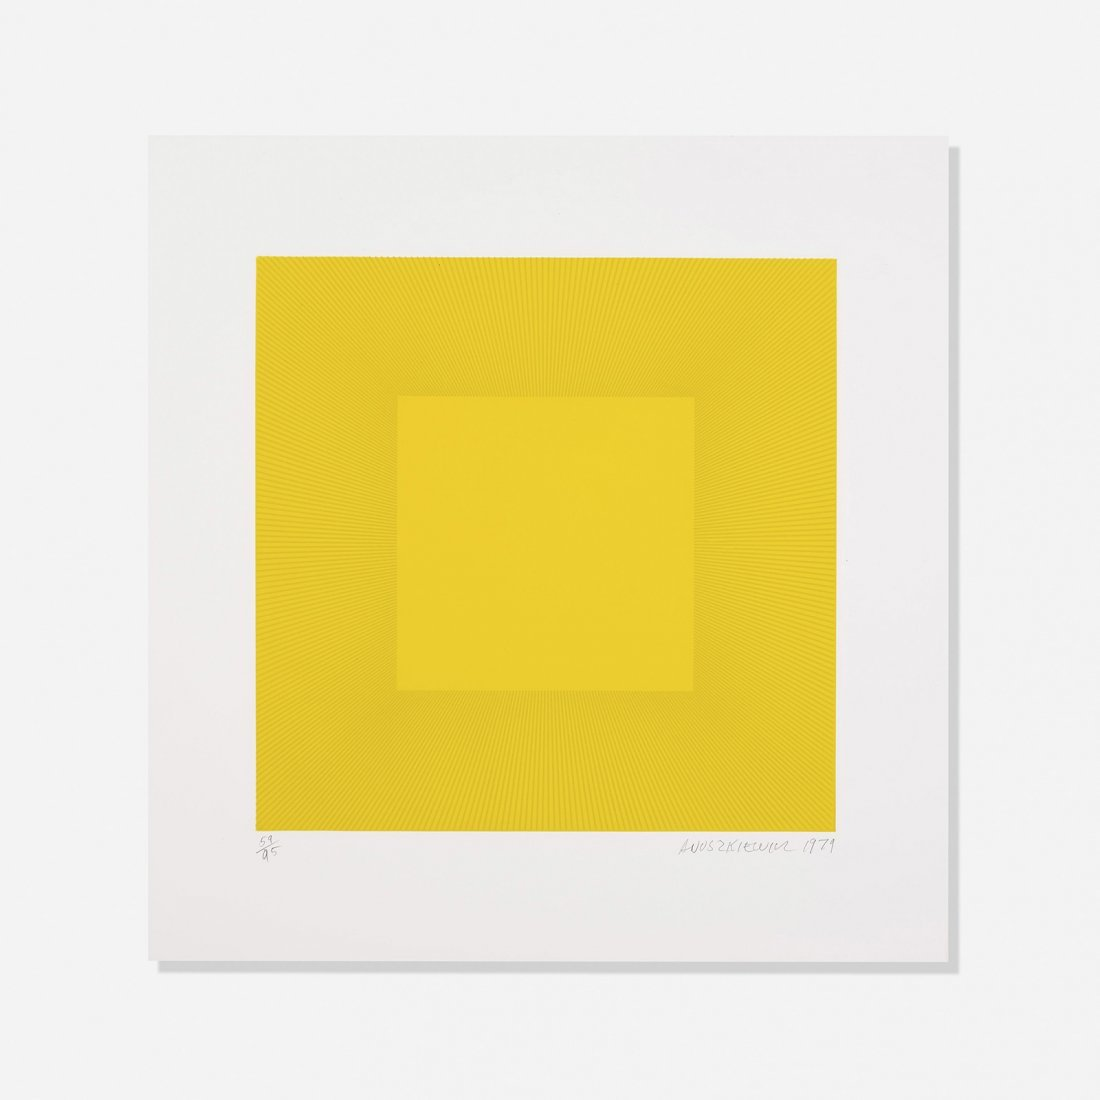 Yellow Reversed by Richard Anuszkiewicz 1970 plate signed